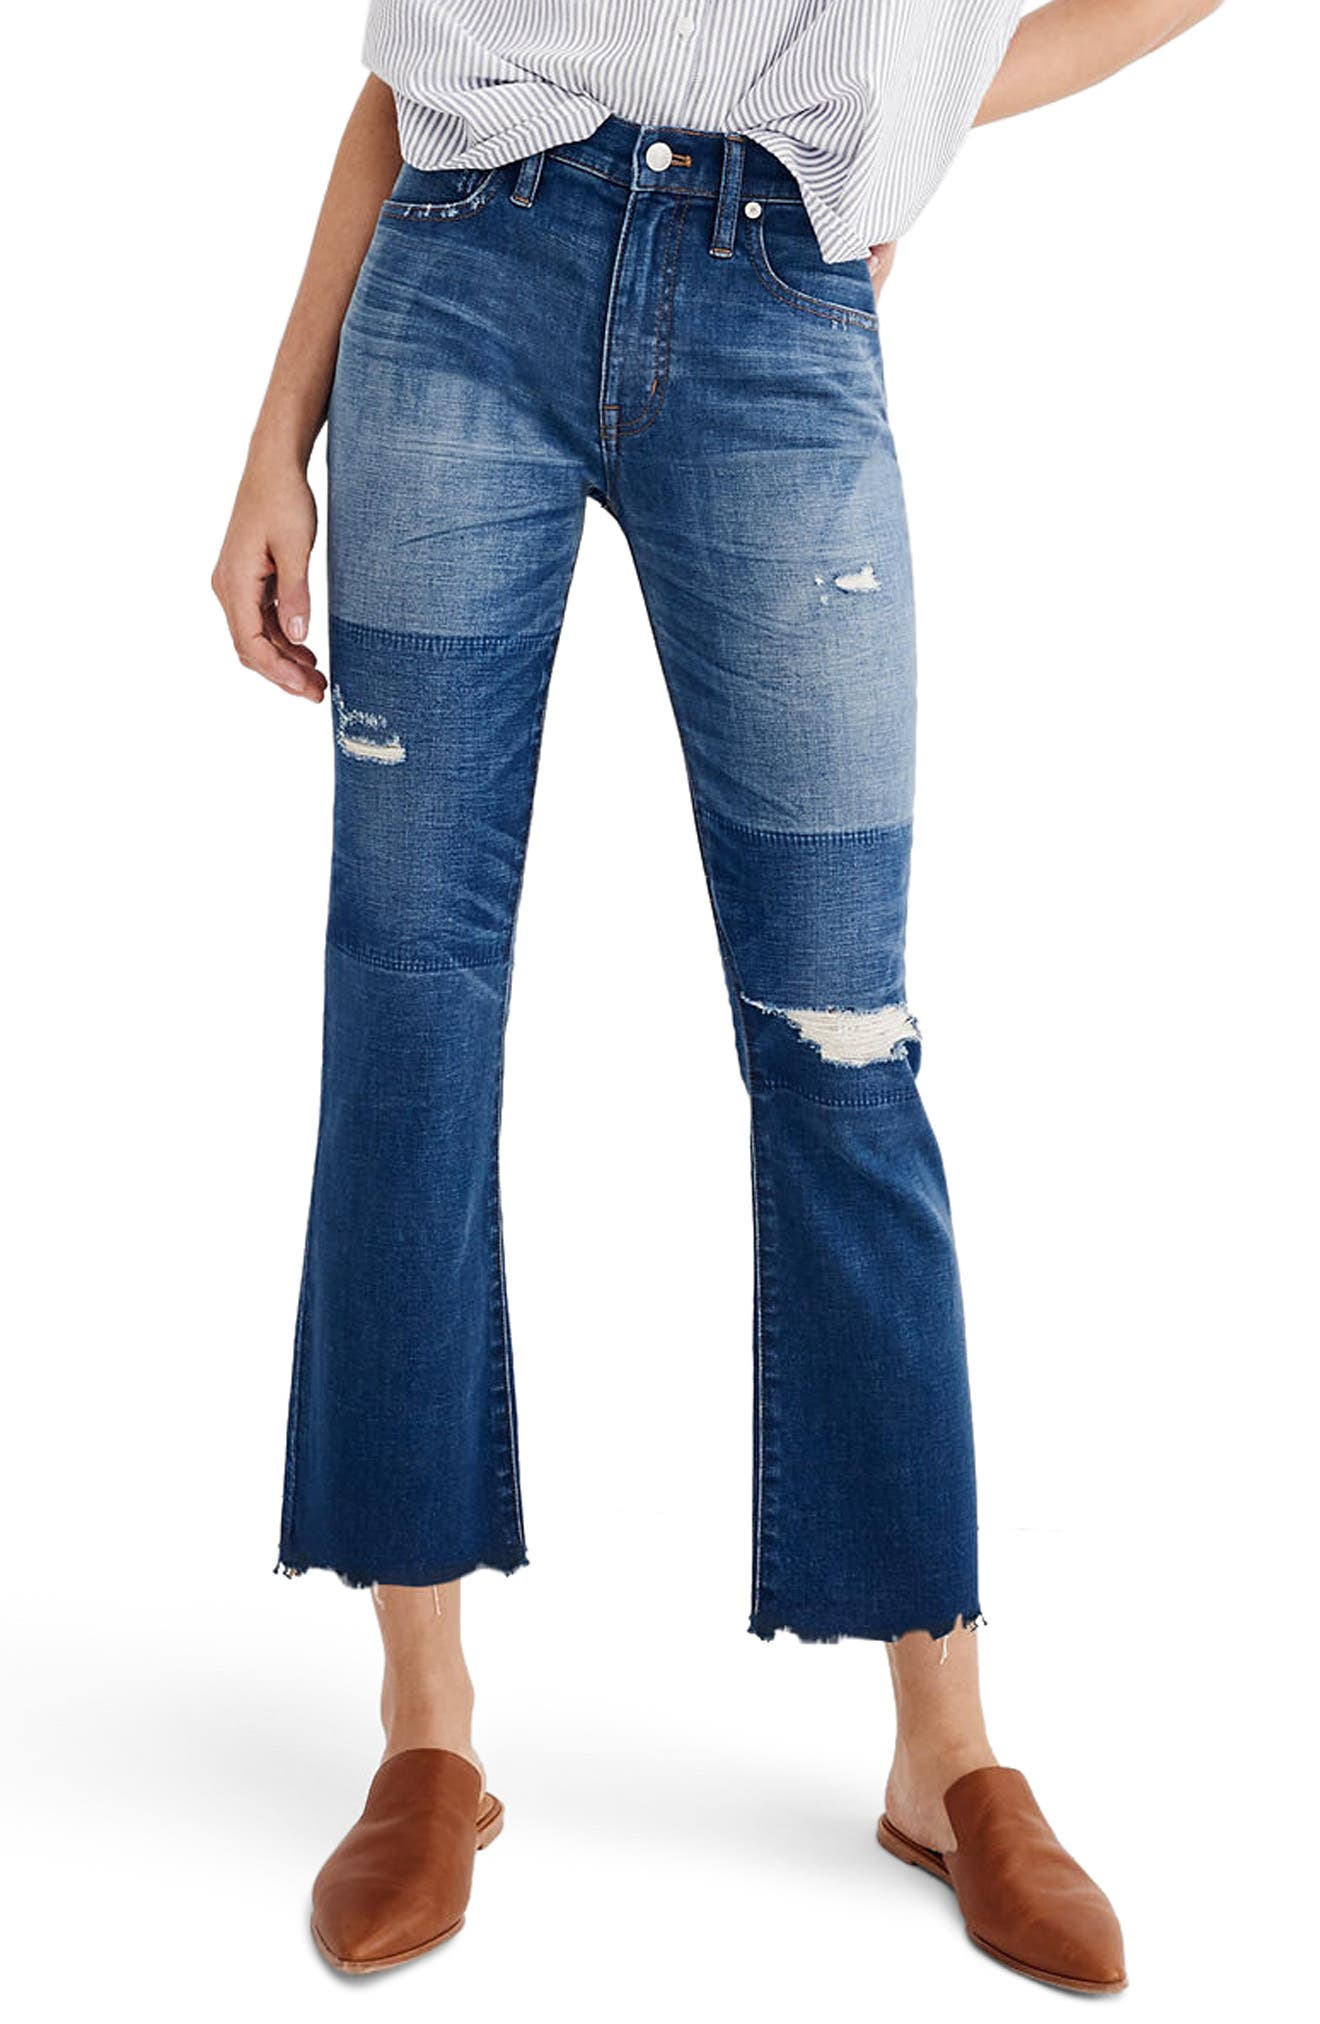 MADEWELL, Cali Ripped Demi Bootleg Crop Jeans, Main thumbnail 1, color, 400